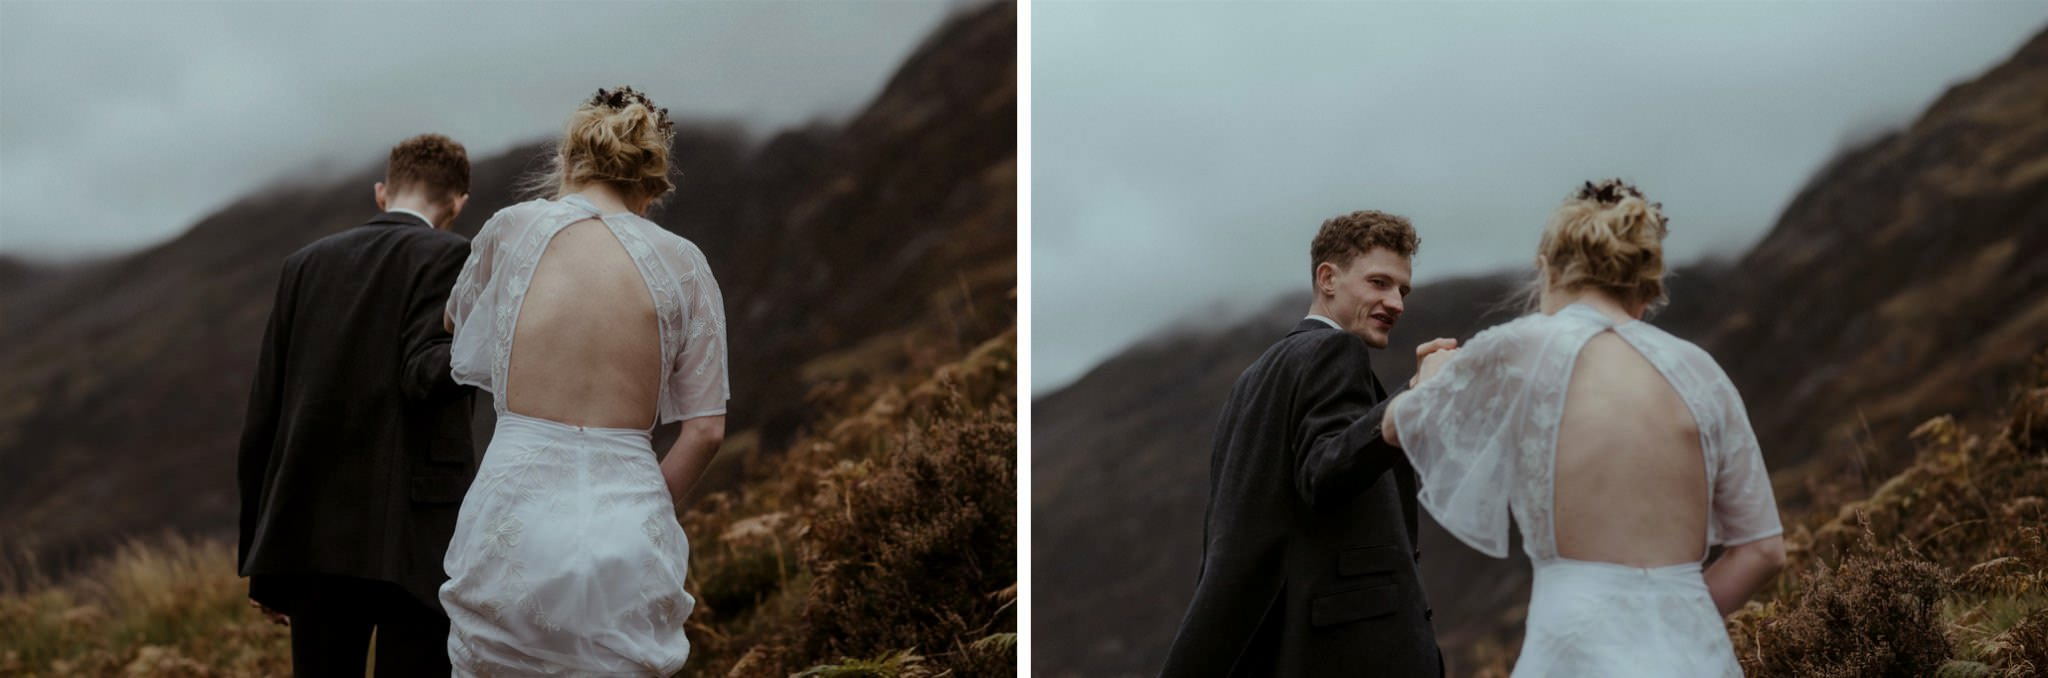 Groom takes brides hand at their Glencoe elopement in the Scottish Highlands